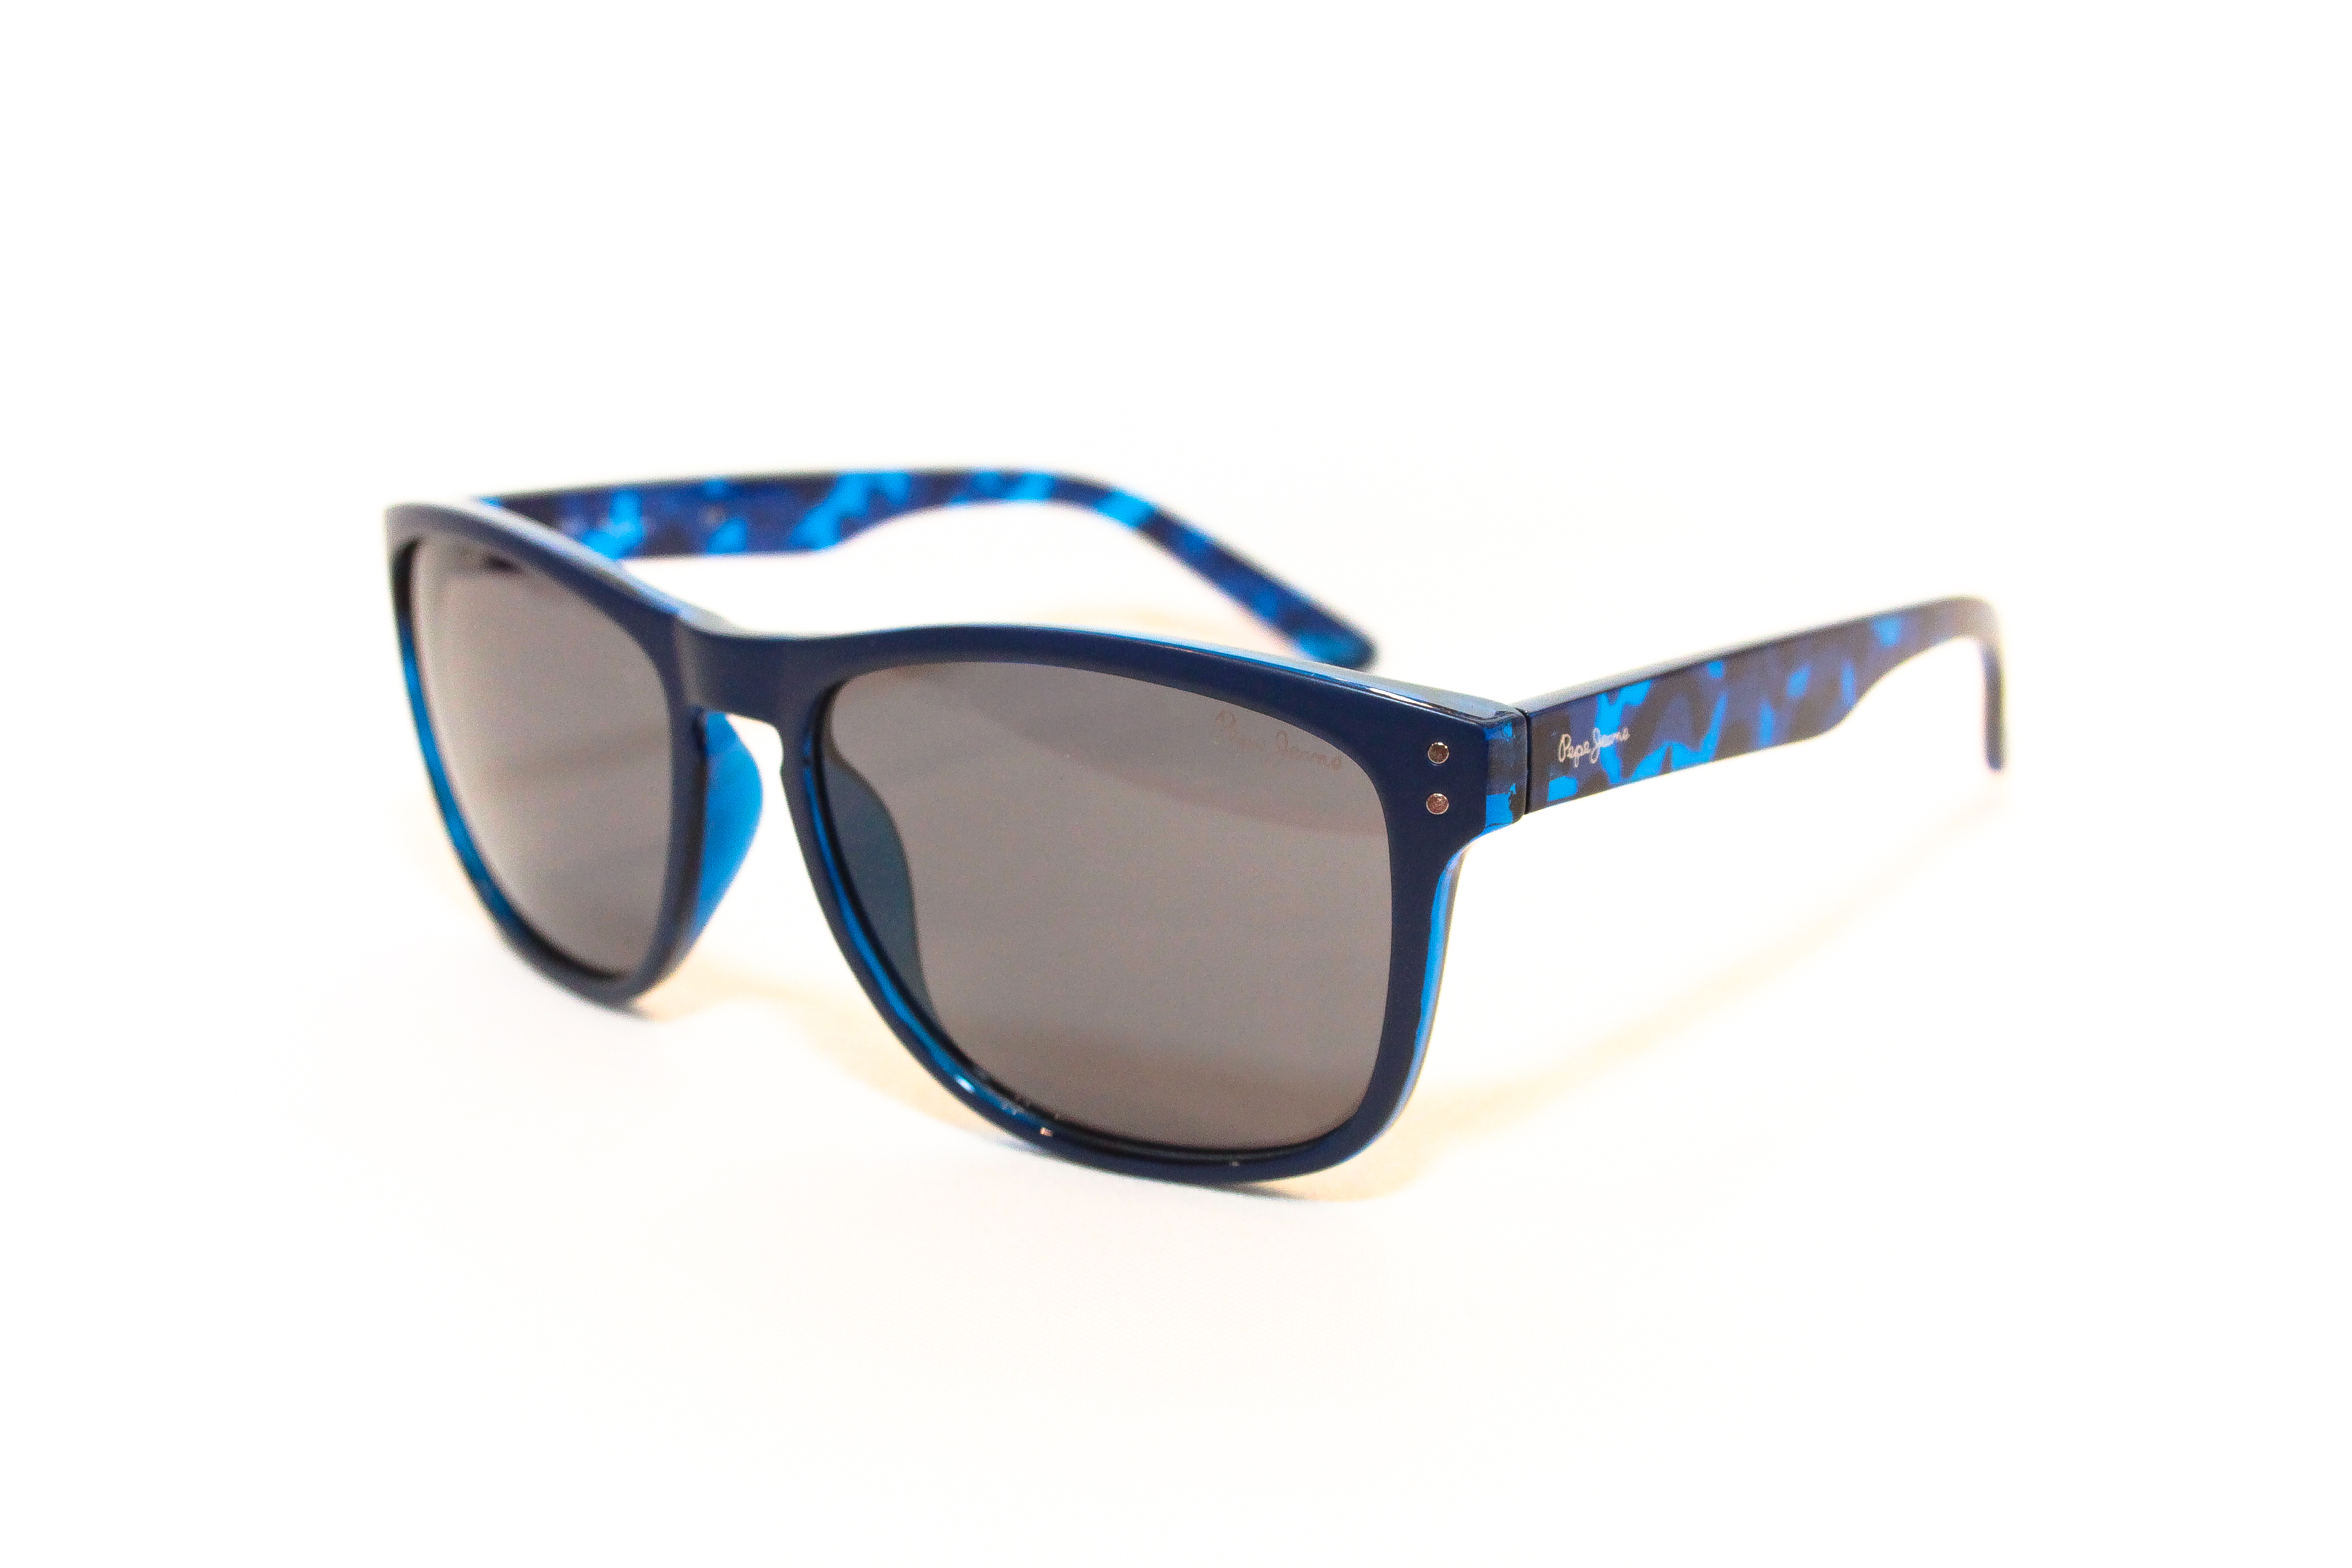 PEPE JEANS 7232 c.3